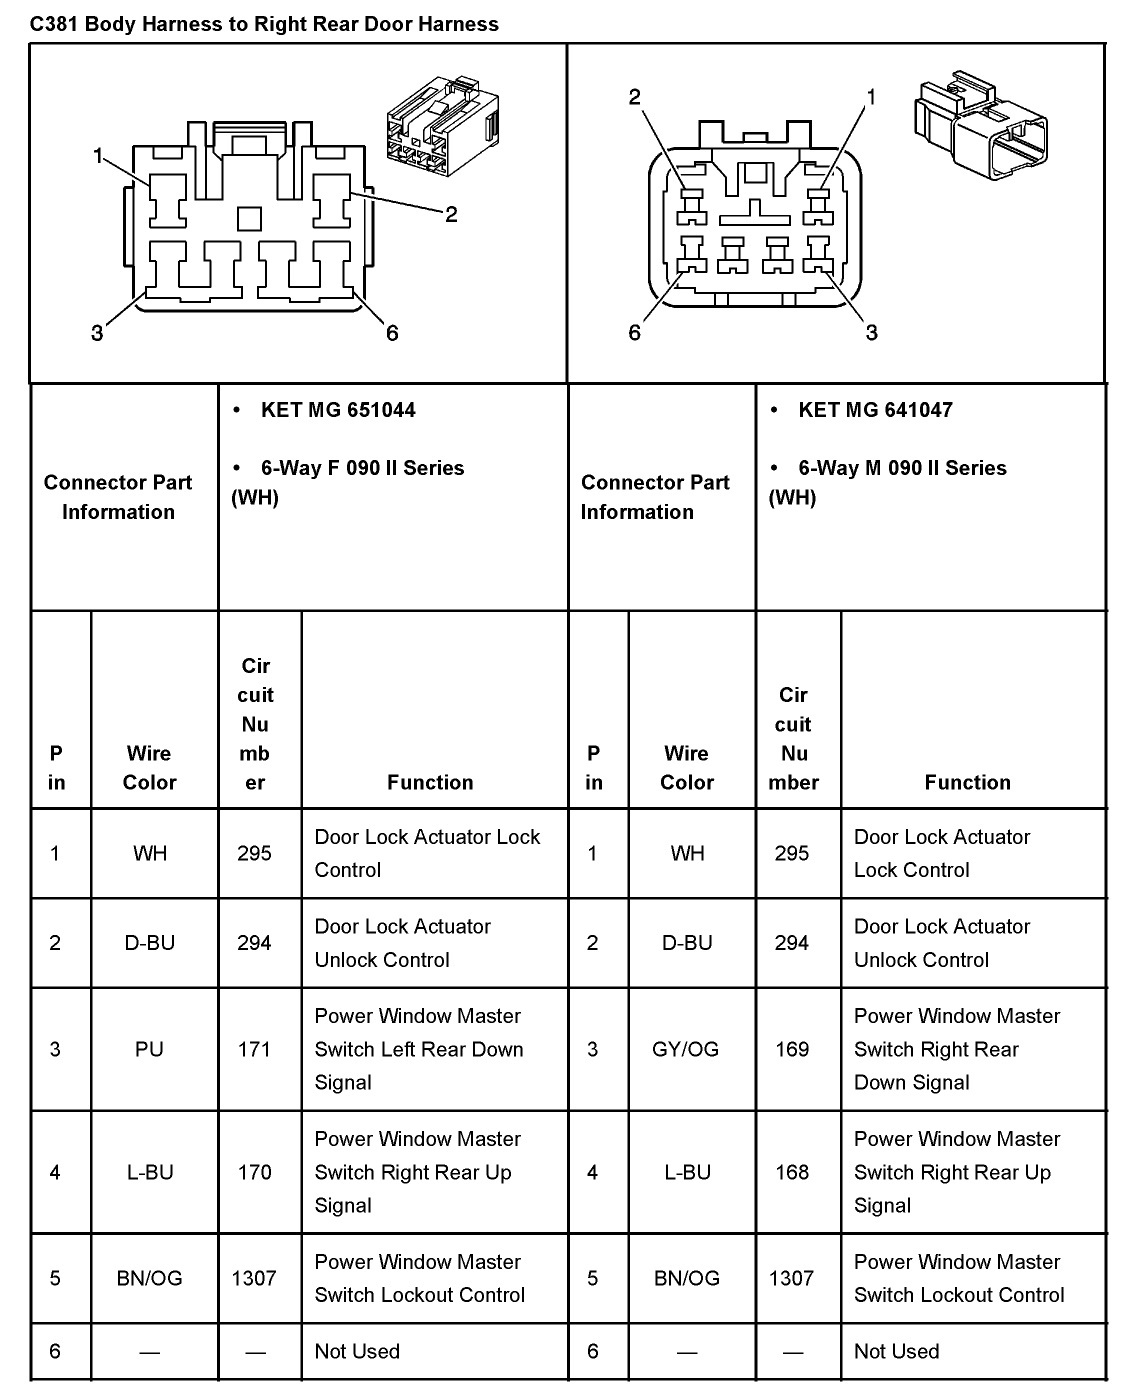 optra stereo wiring diagram optra wiring diagrams 7359d1383706233 2005 aveo master connector list diagrams ma13